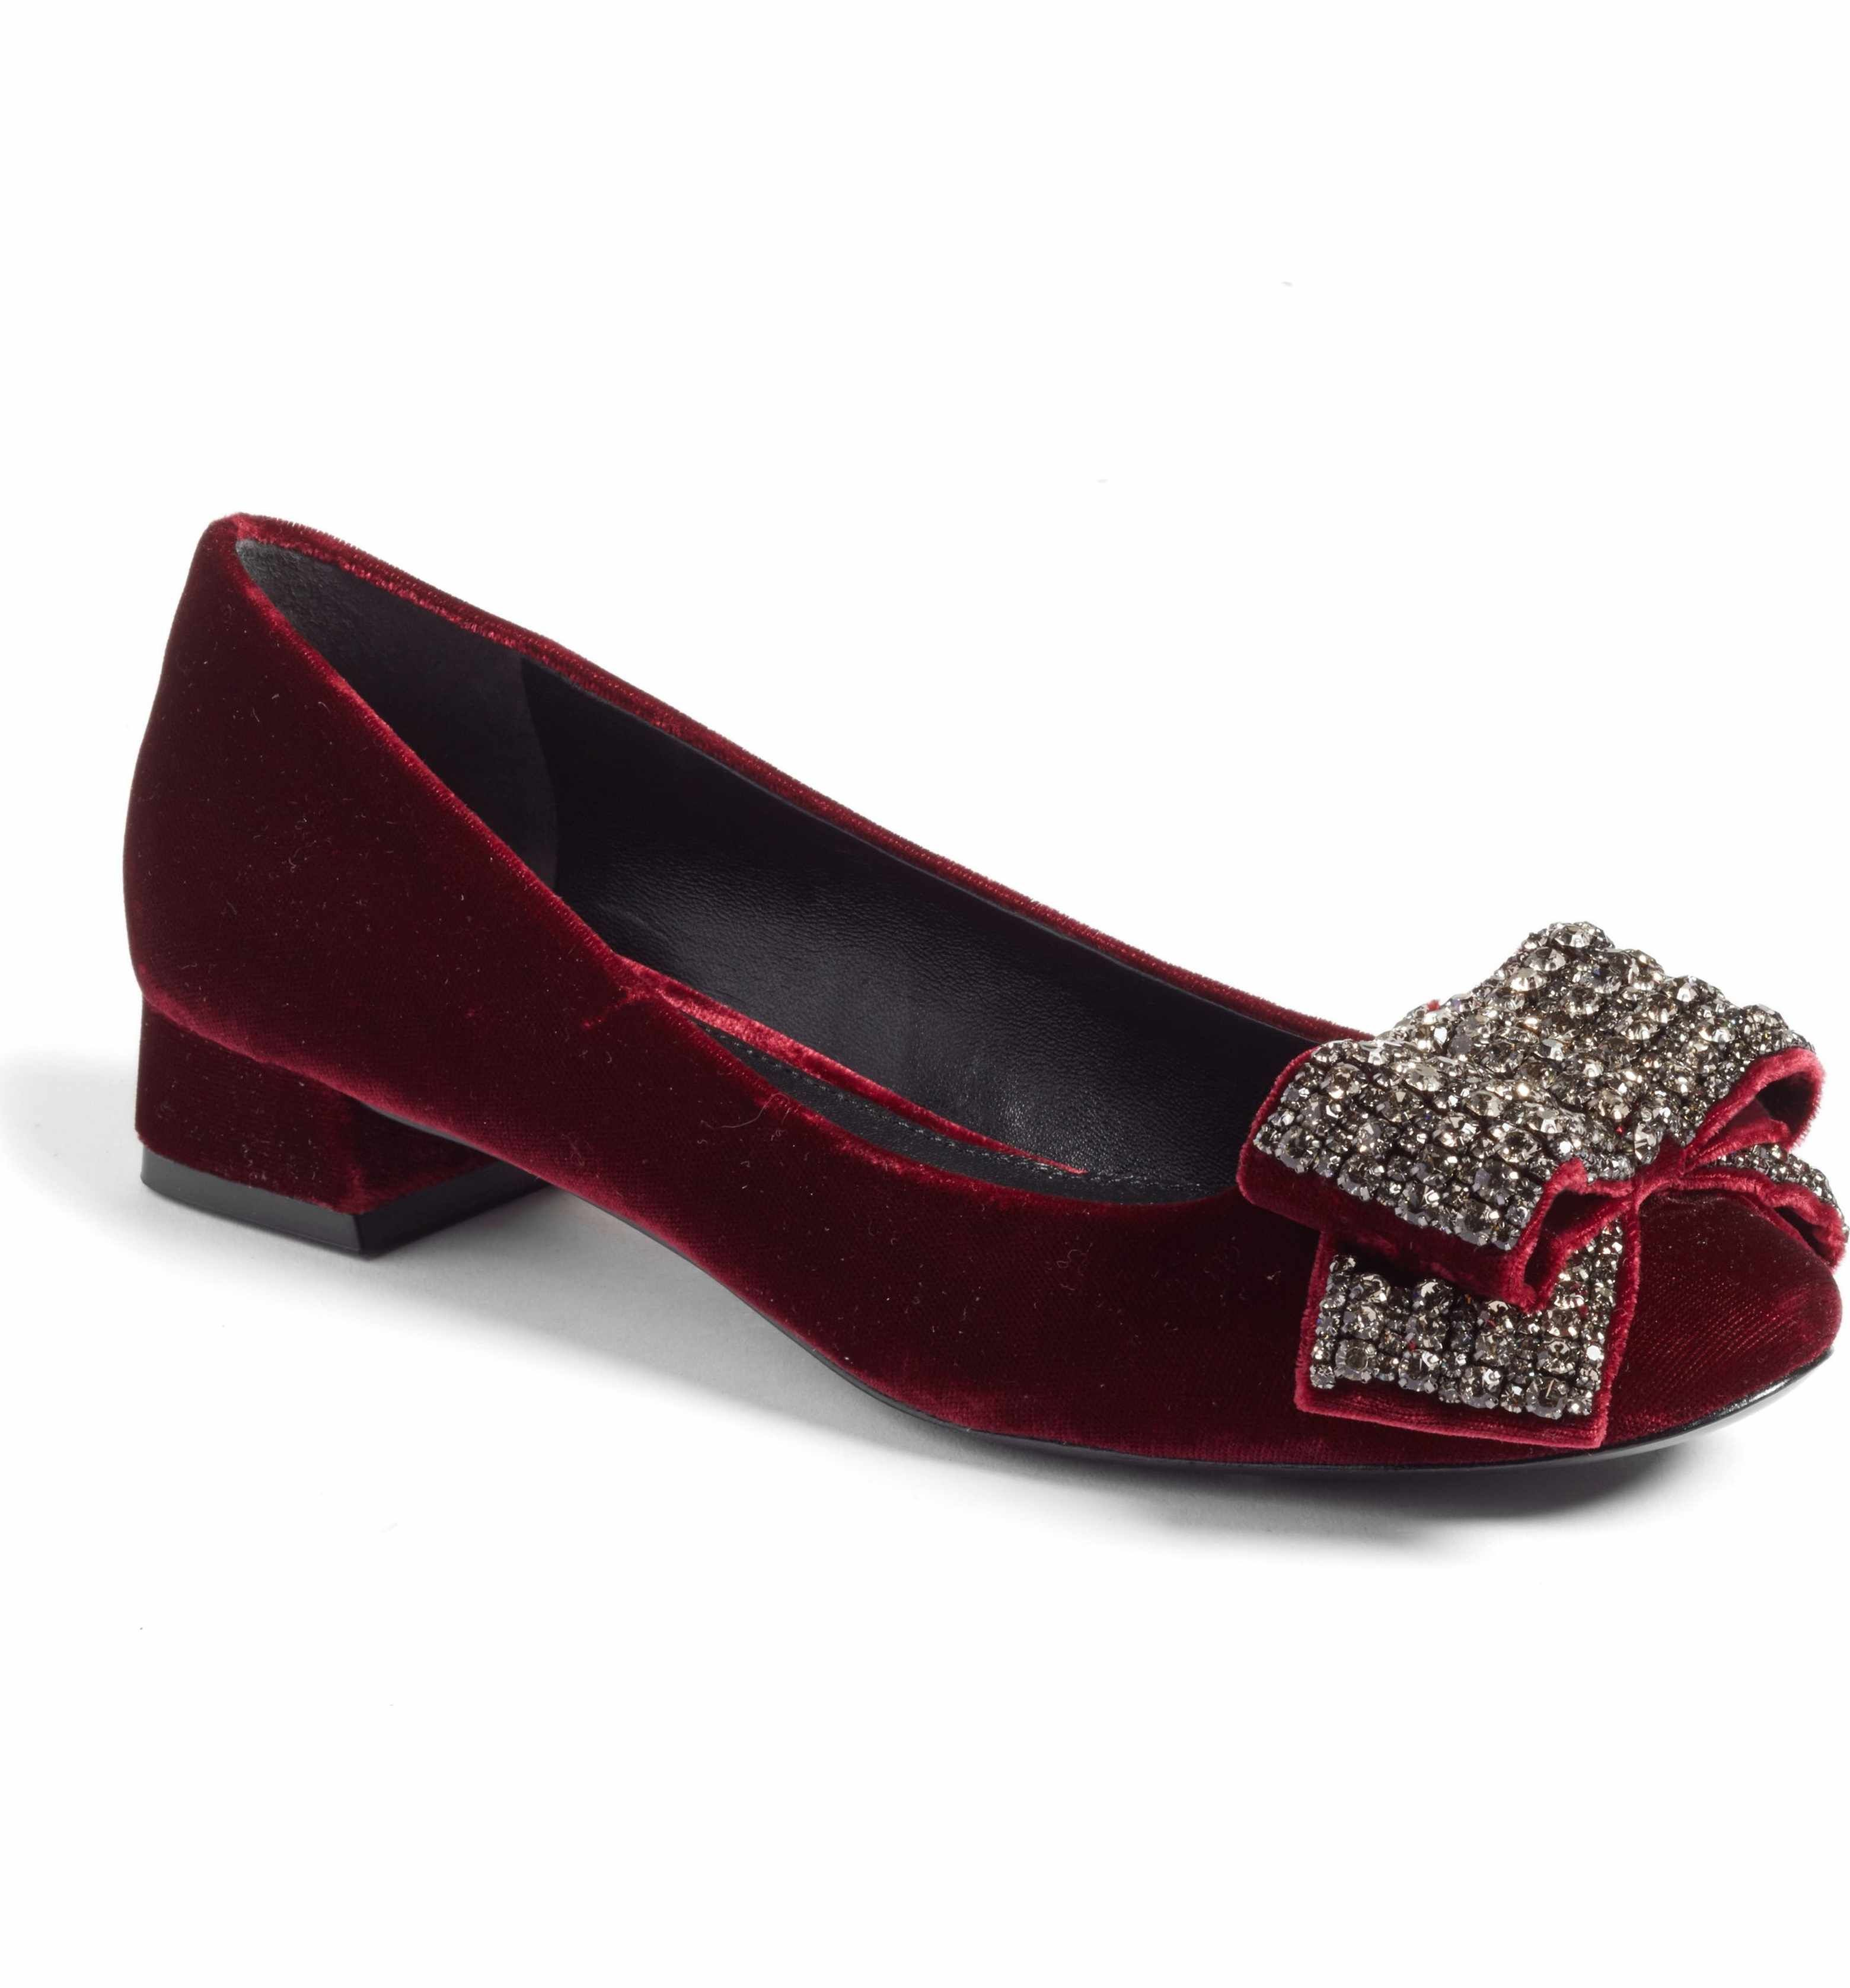 Main Image - Tory Burch Josephine Embellished Bow Pump (Women)